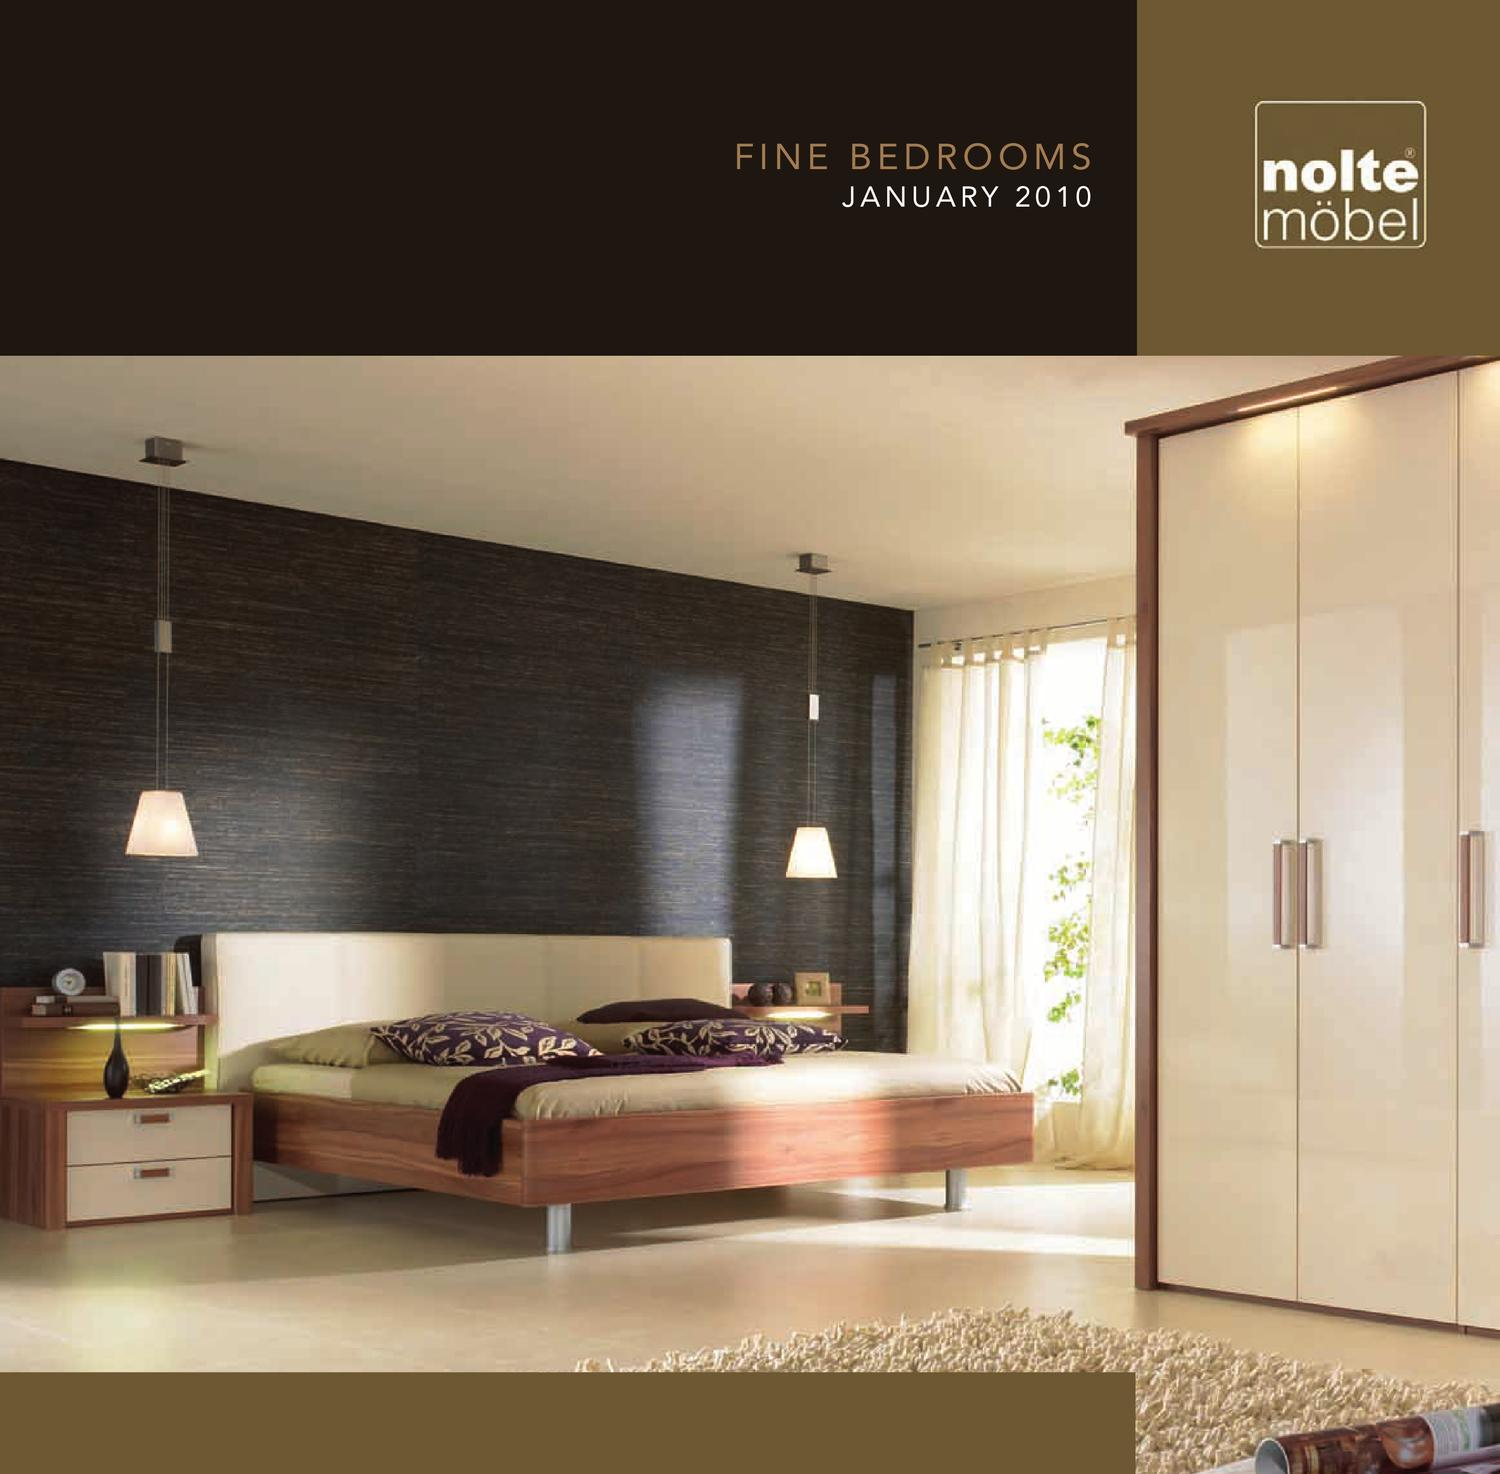 Nolte Bedroom Furniture Nolte Mobel Brochure 2010 By Ben Palmer Issuu